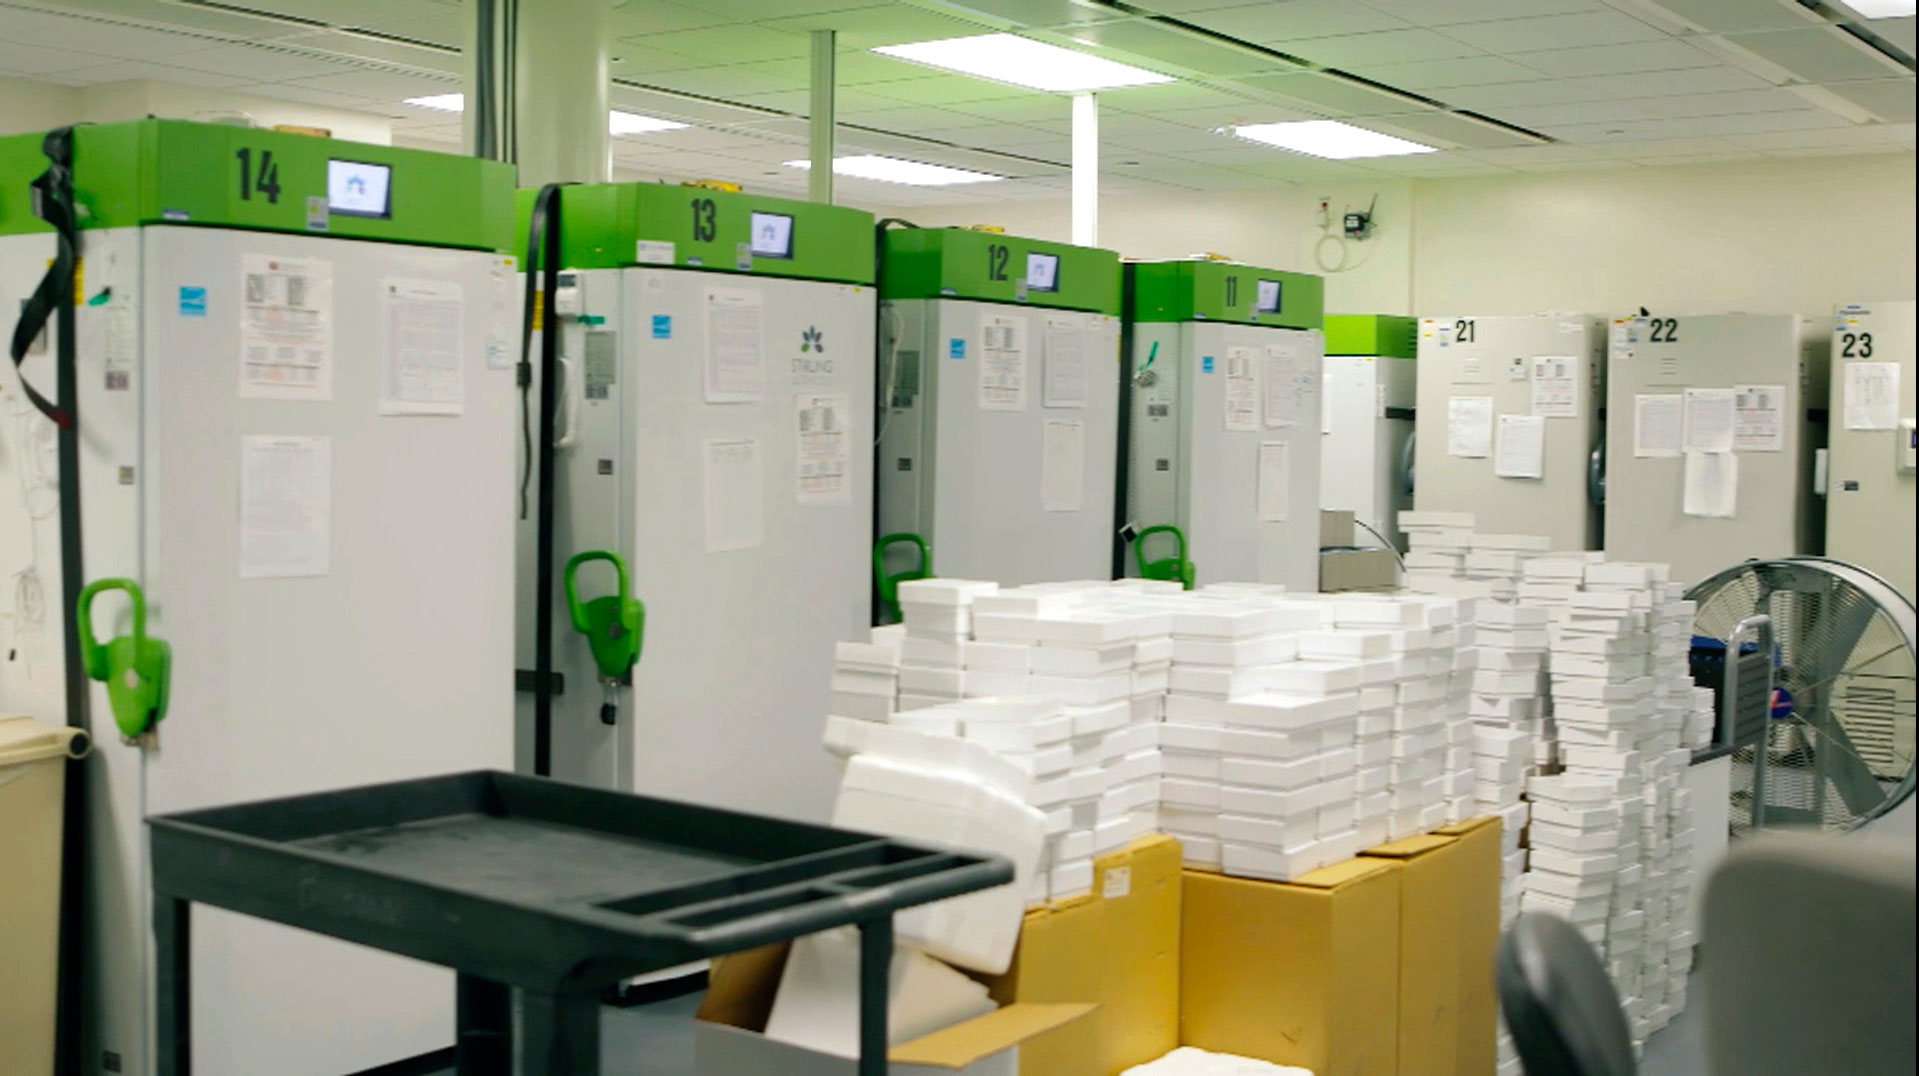 The room where coronavirus vaccines will be kept in super-cold storage at Cedars-Sinai Medical Center in Los Angeles, California.